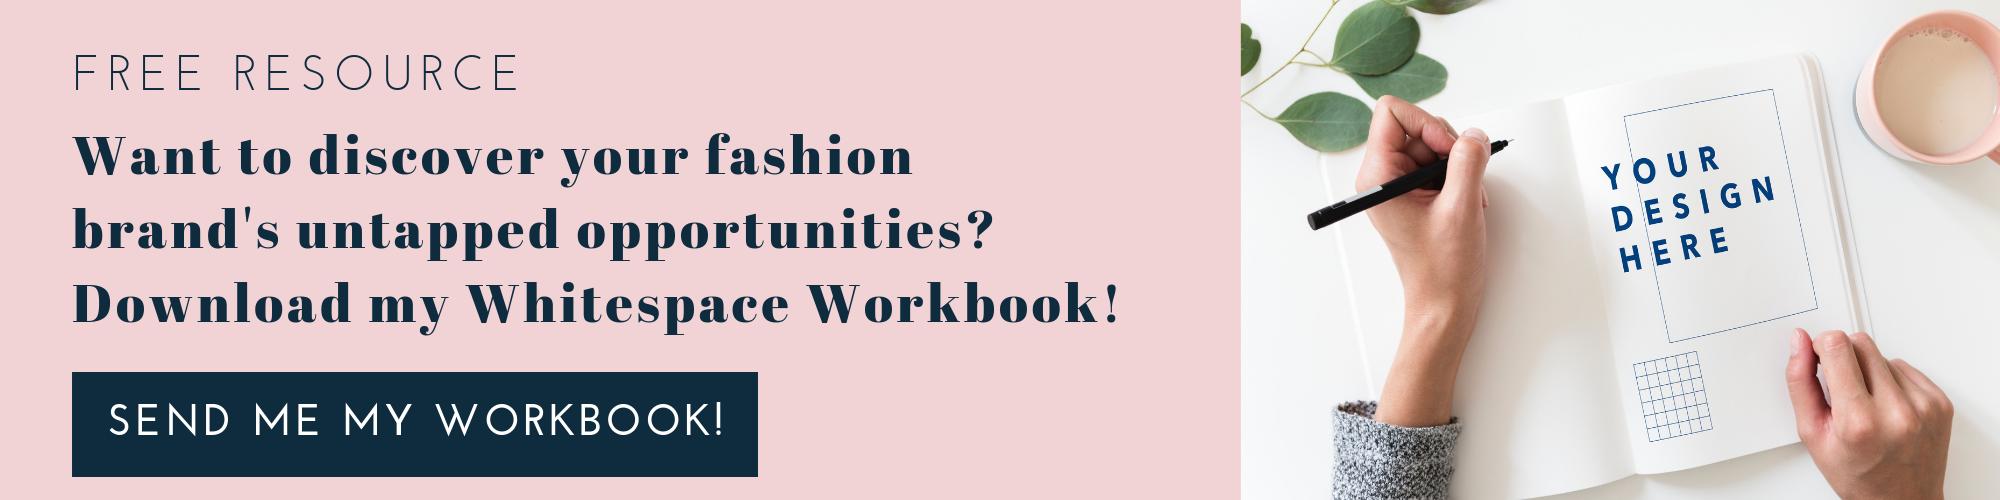 Discover your fashion brand's untapped opportunities with a Whitespace Workbook